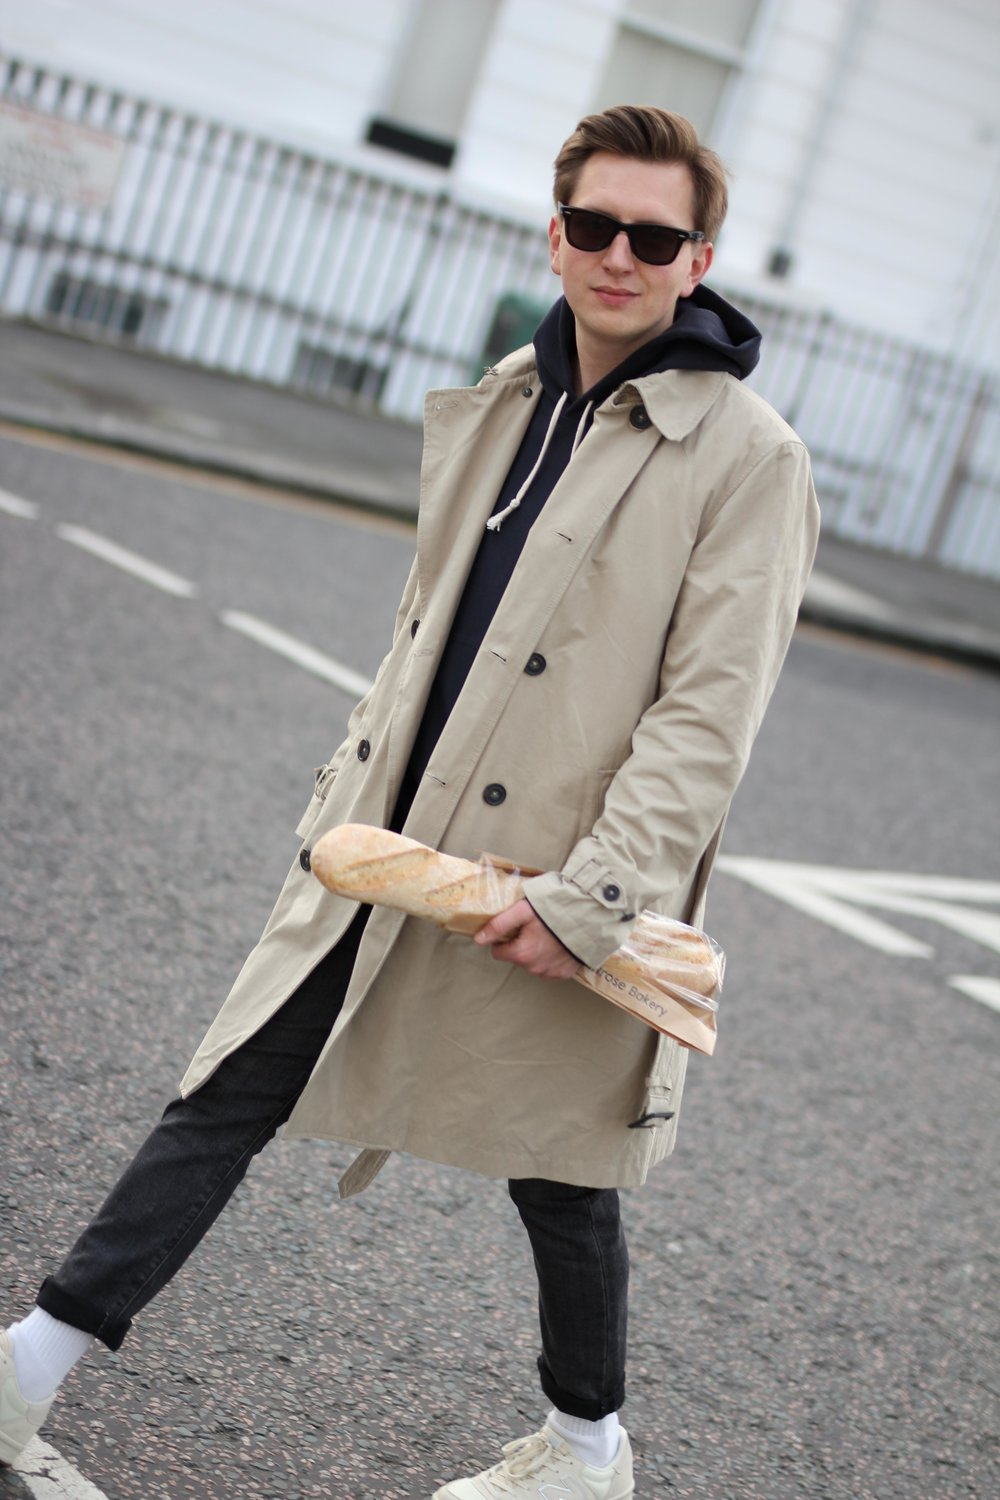 London_Chelsea_Baguette_ootd_menswear_notting_Hill